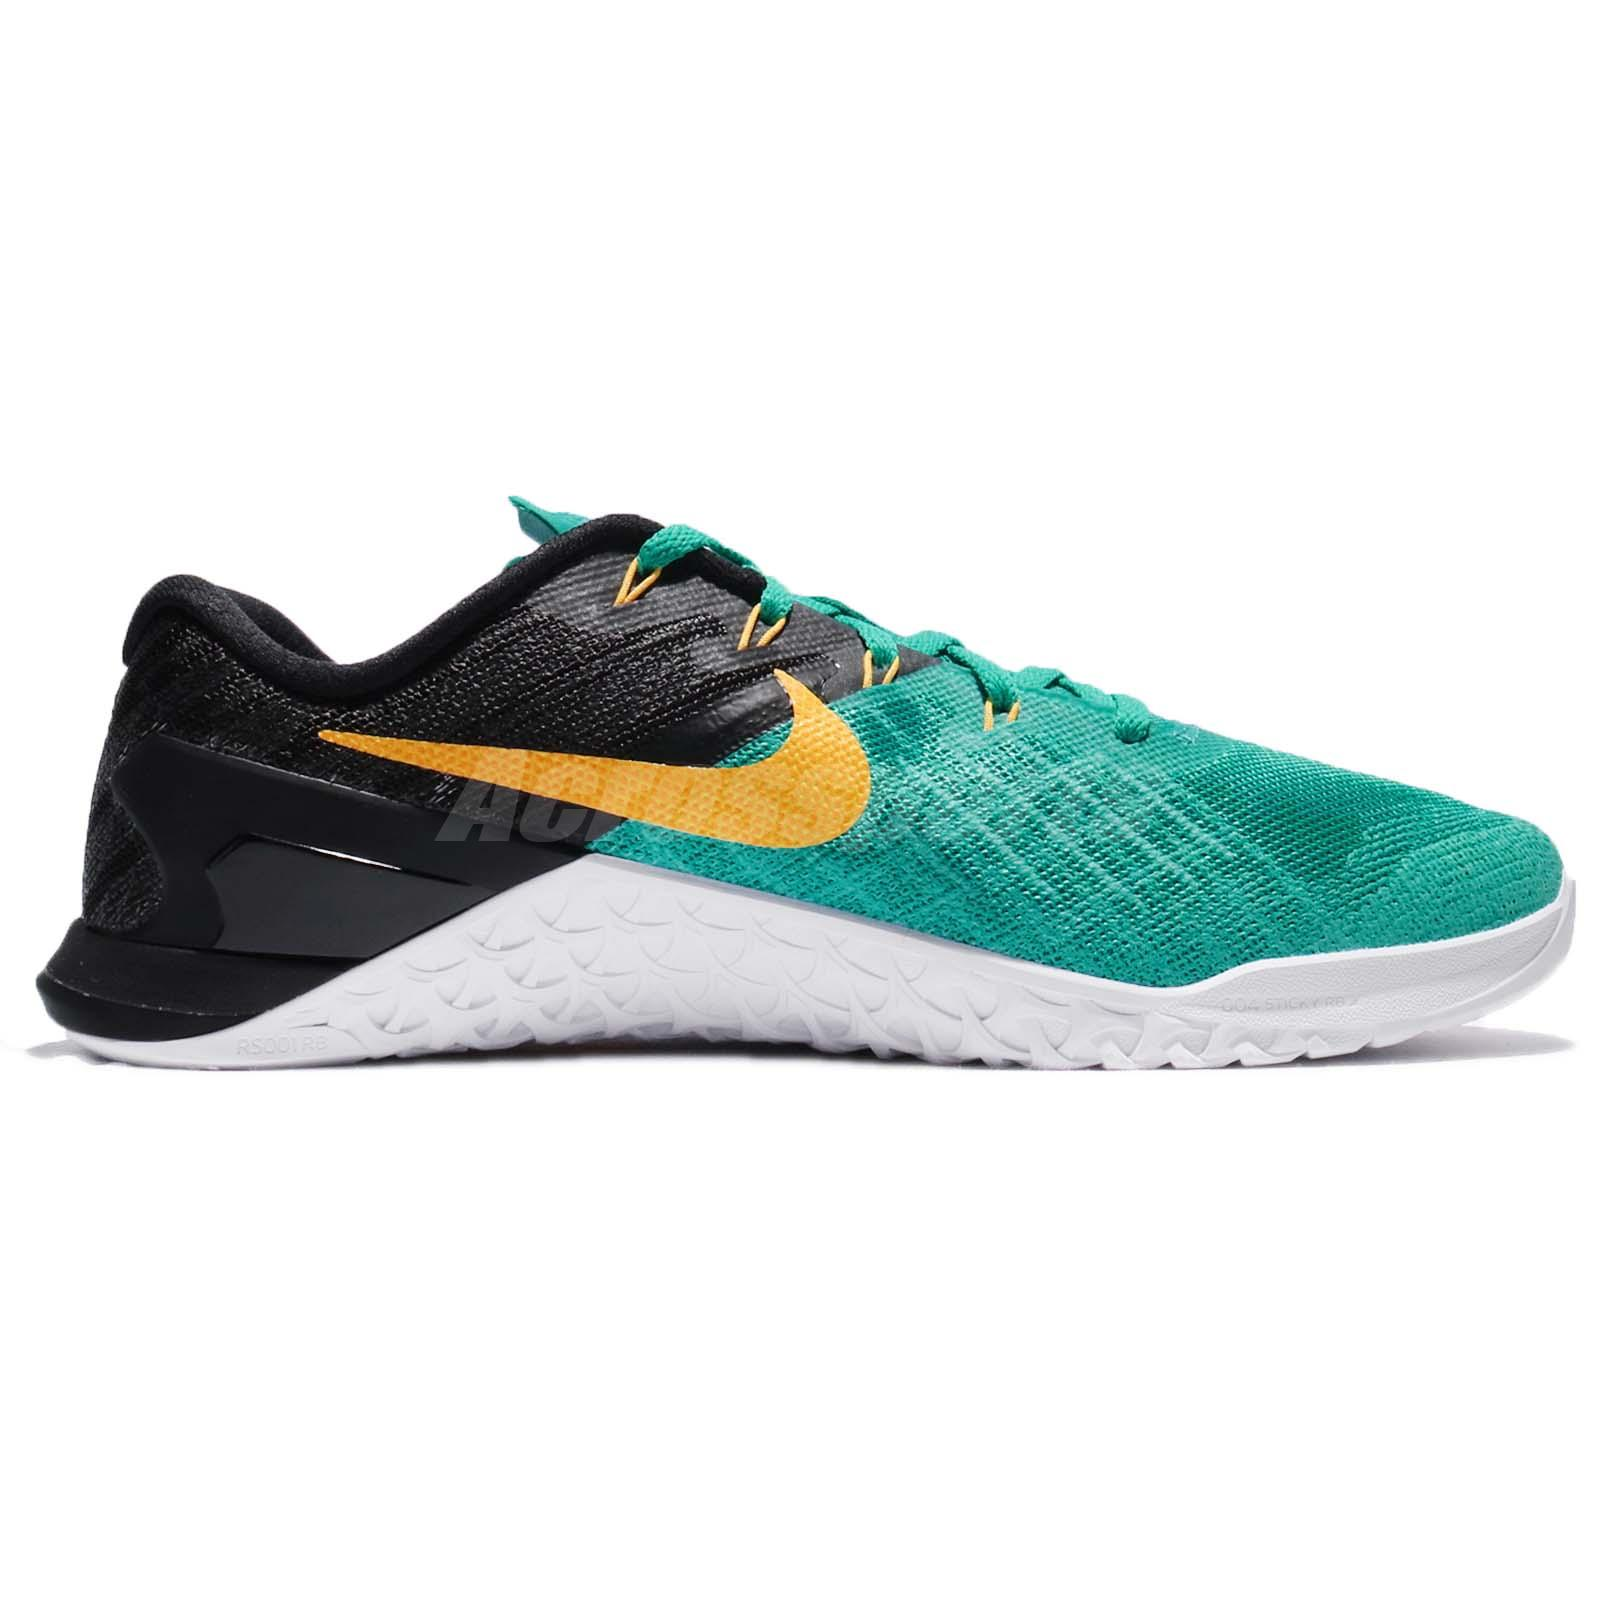 6f4ec0409cec Nike Metcon 3 III Clear Jade Laser Orange Men Training Lifting Shoes ...